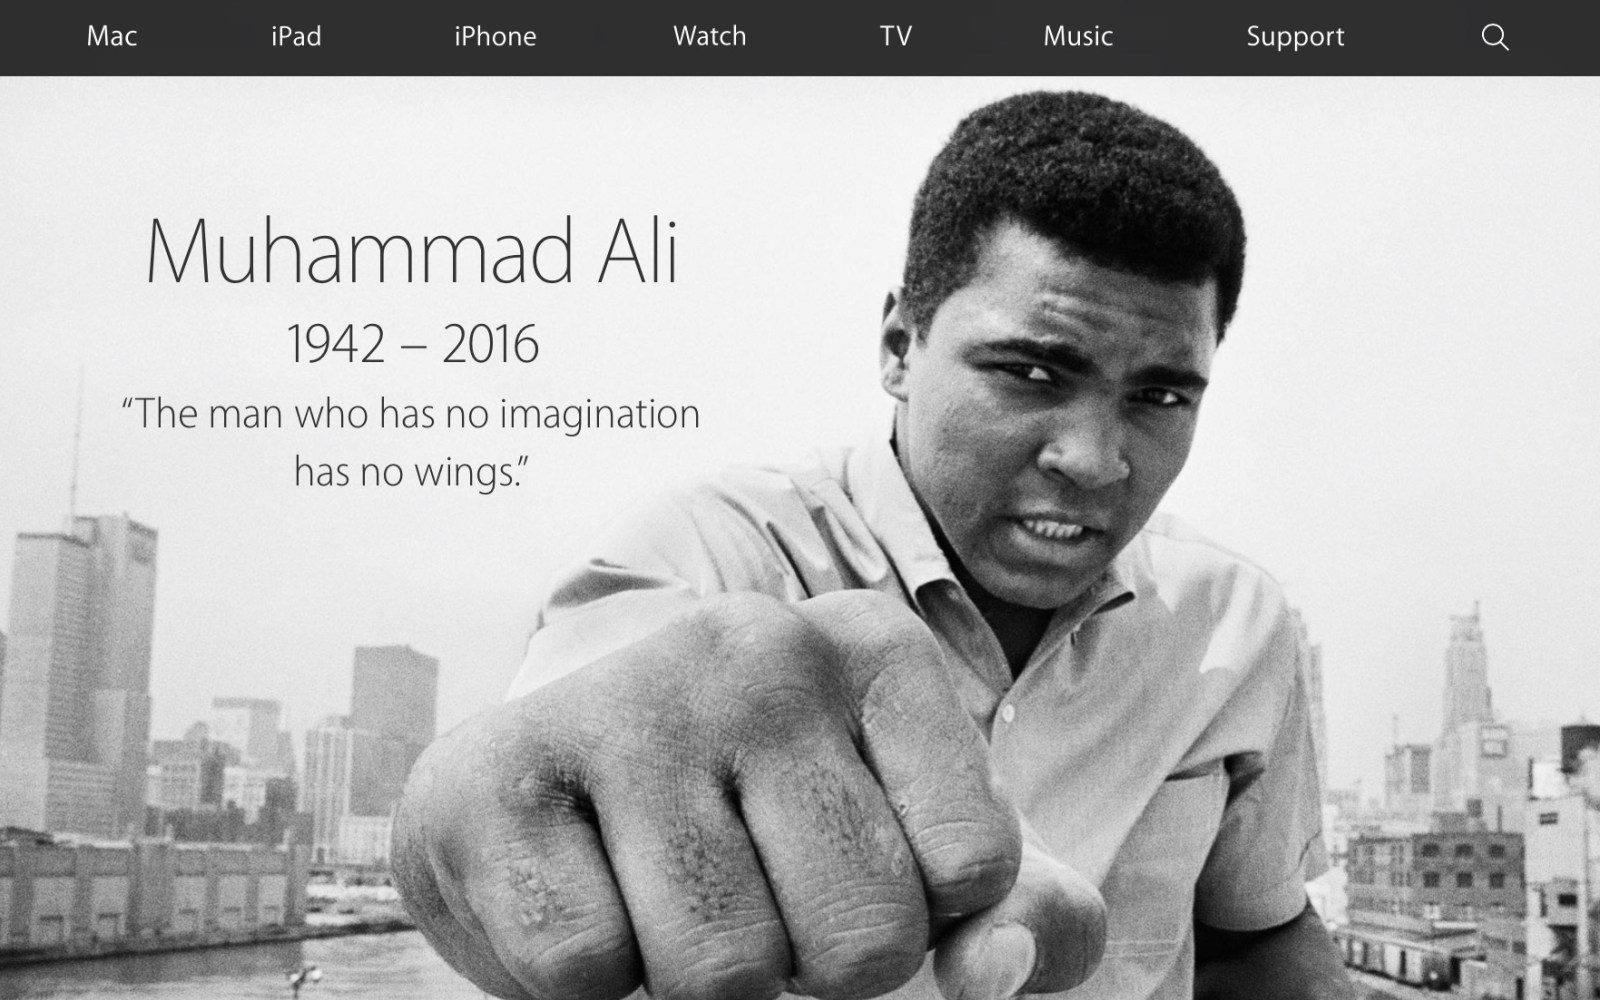 Apple commemorates Muhammad Ali with homepage tribute